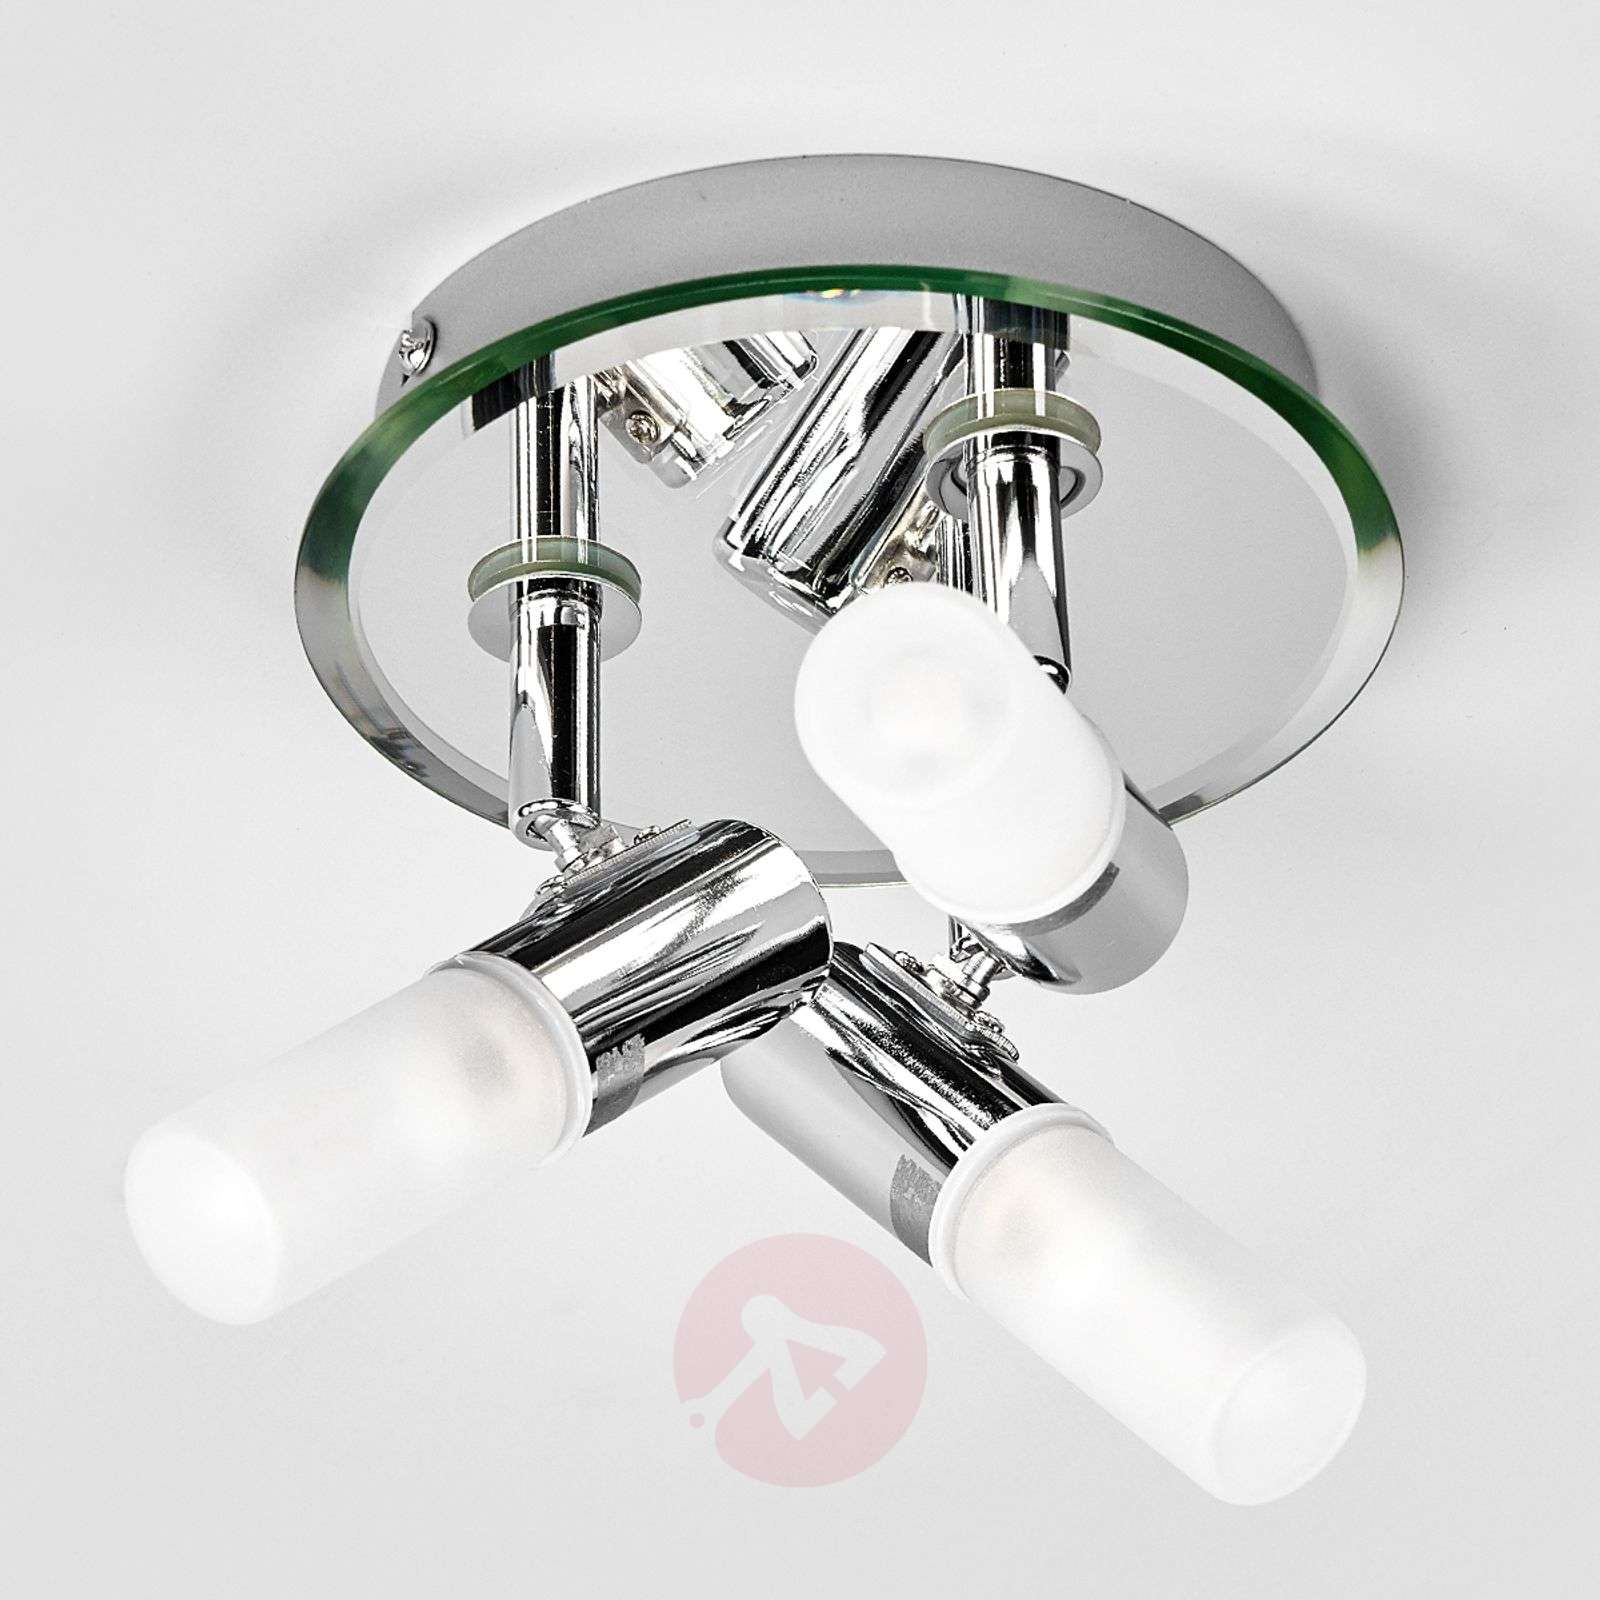 Jilian circular ceiling spotlight for bathrooms-9634030-09